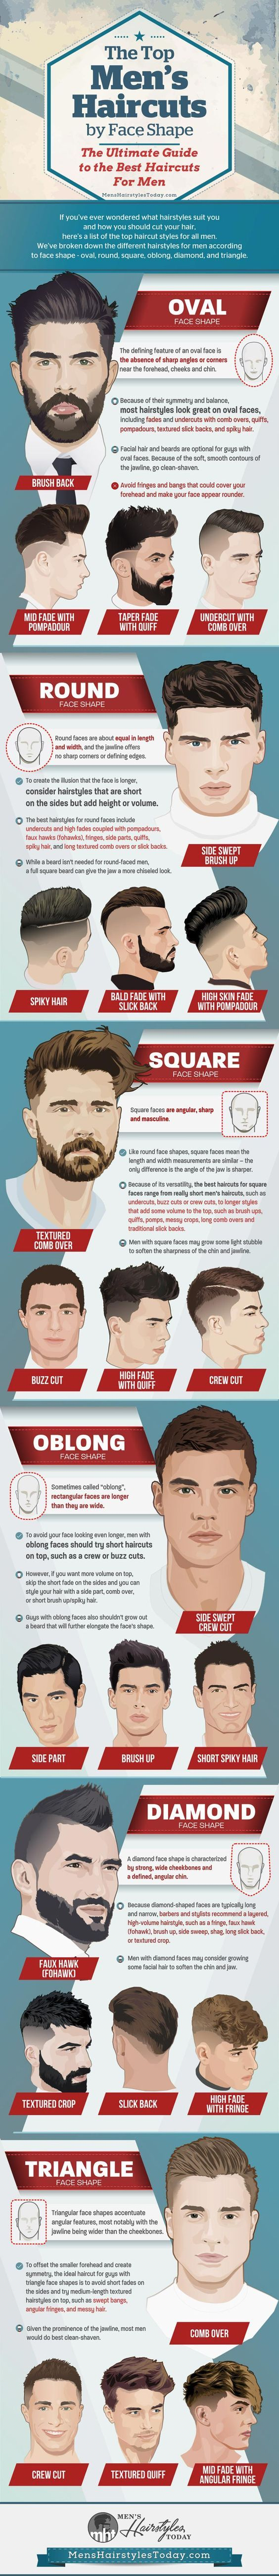 The Best Hairstyles For Men By Face Shape - The Ultimate Guide to Cool Men's Haircuts (Fades, Undercuts, Pompadours, Side Parts, Comb Overs, Quiffs, and Spiky Hair):